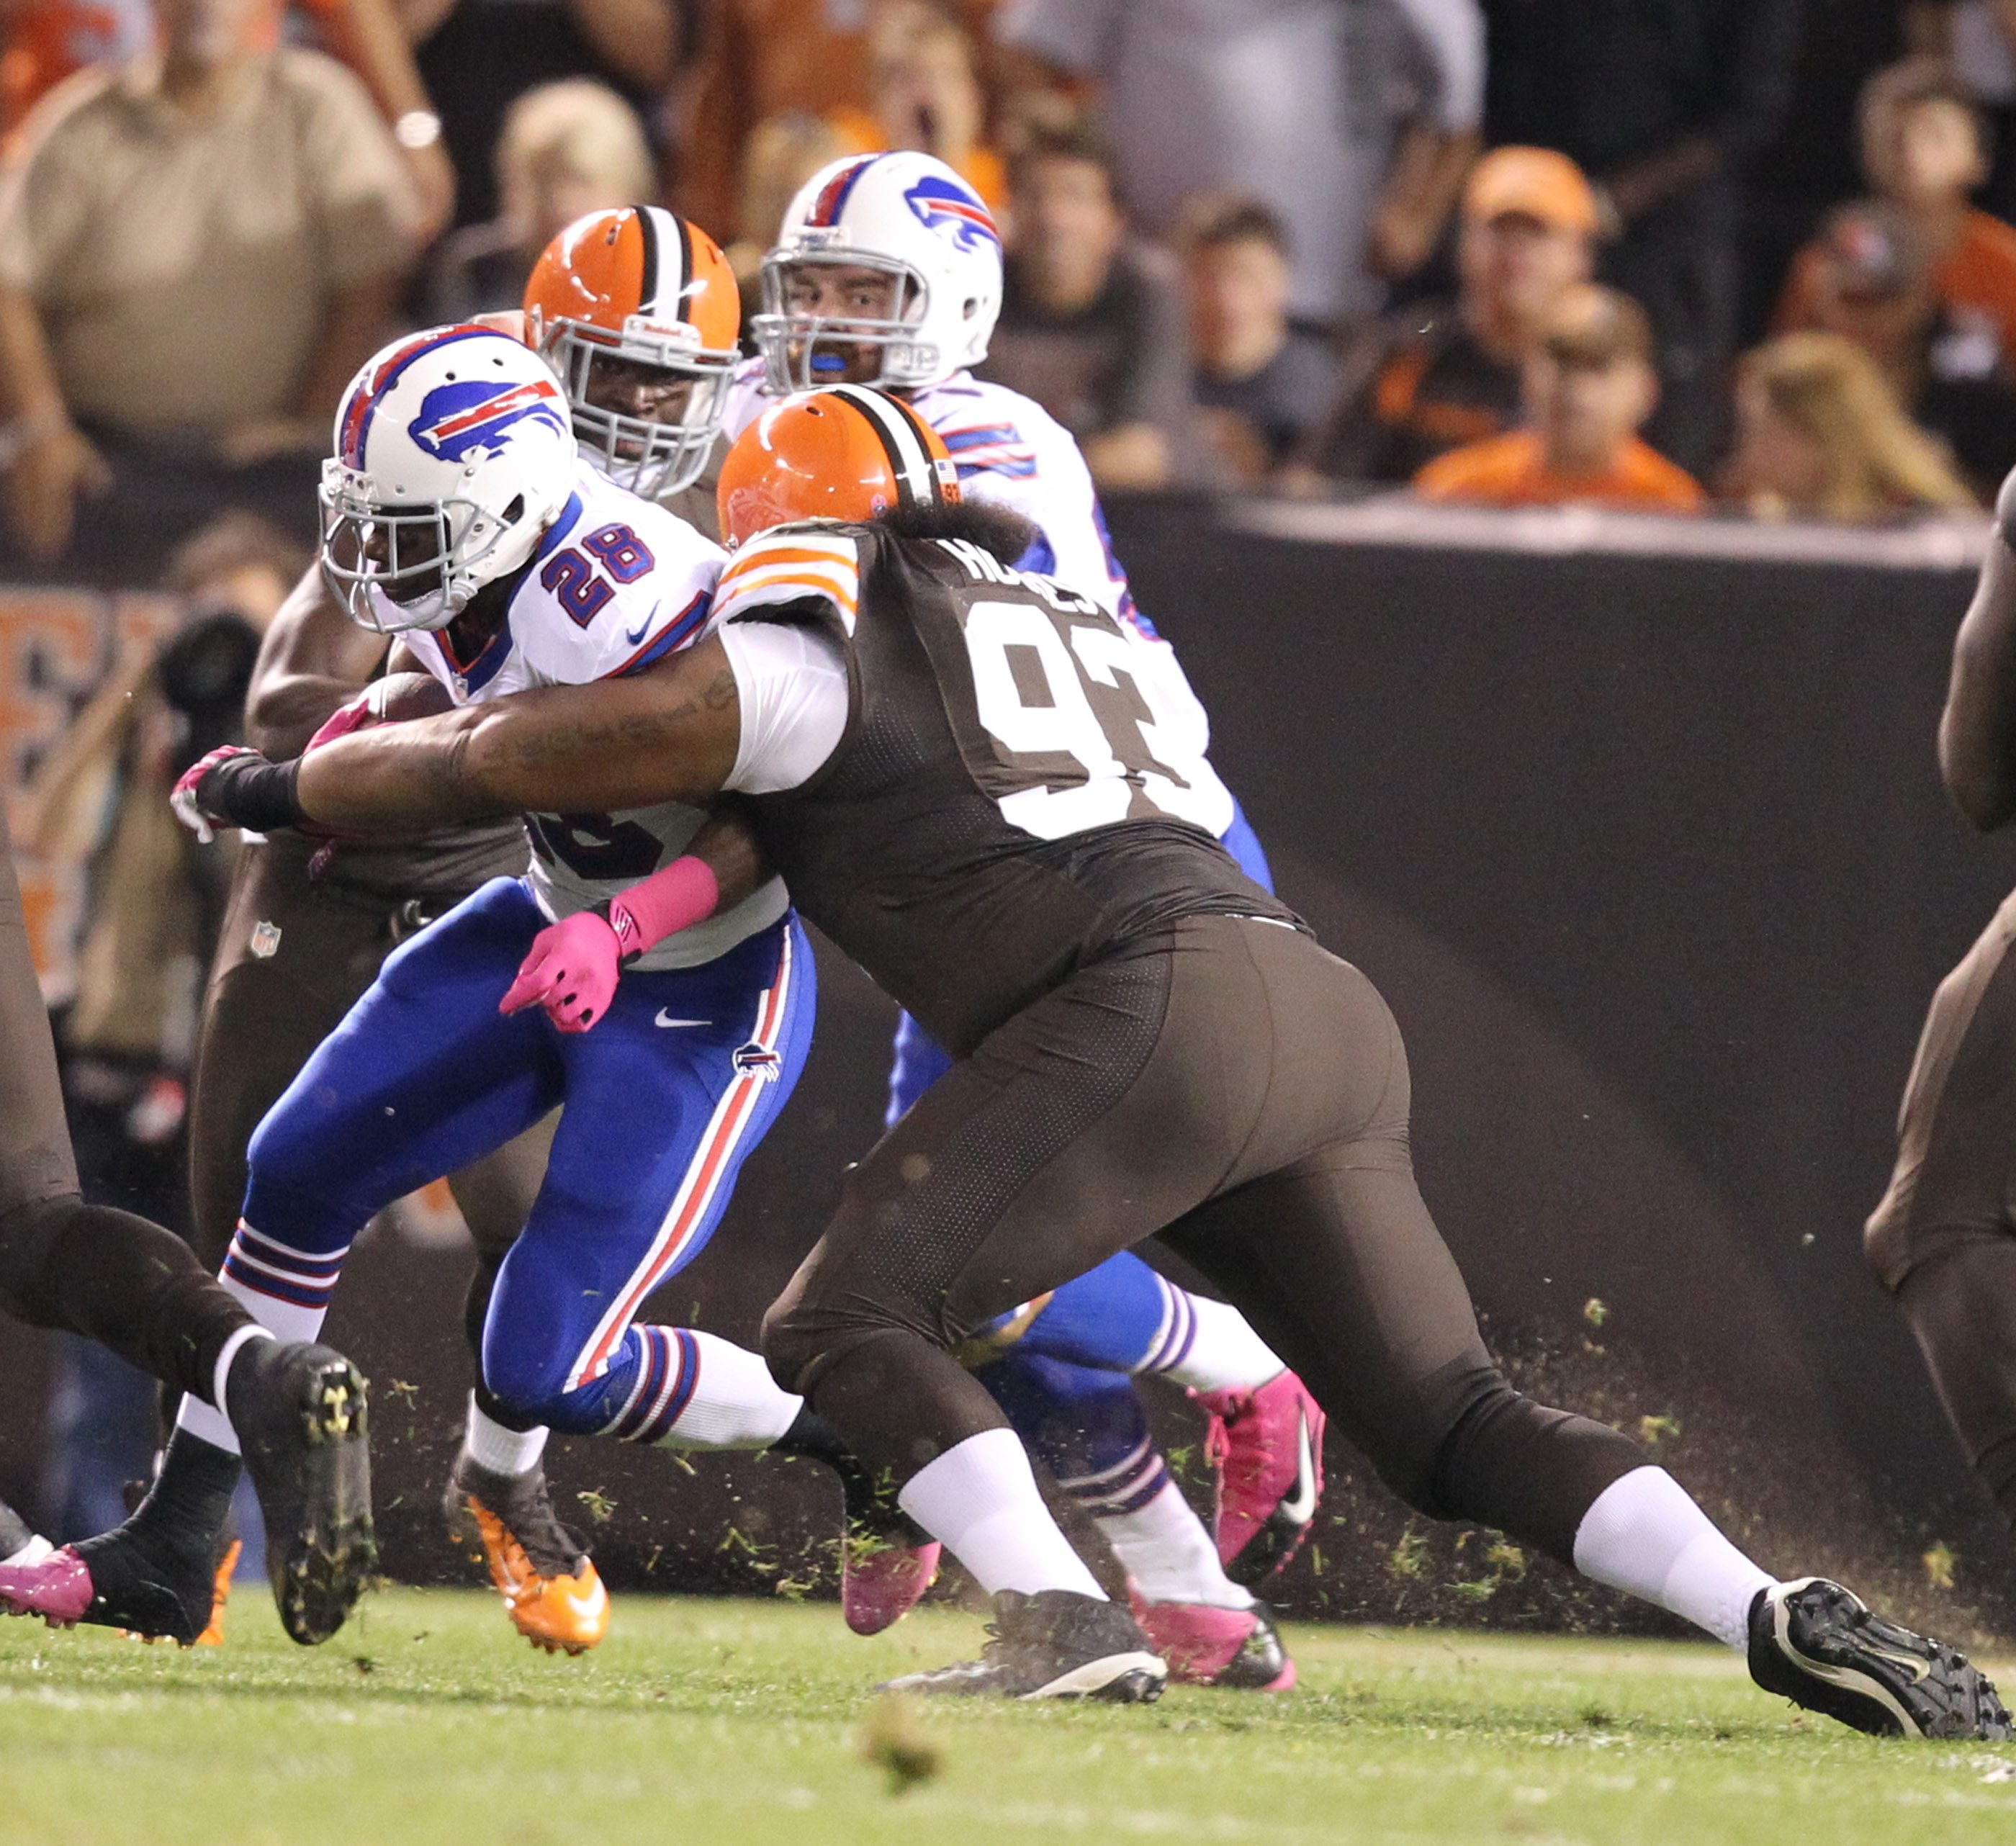 C.J. Spiller (28) and the other Bills running backs were terrific against the stout Browns defensive front.